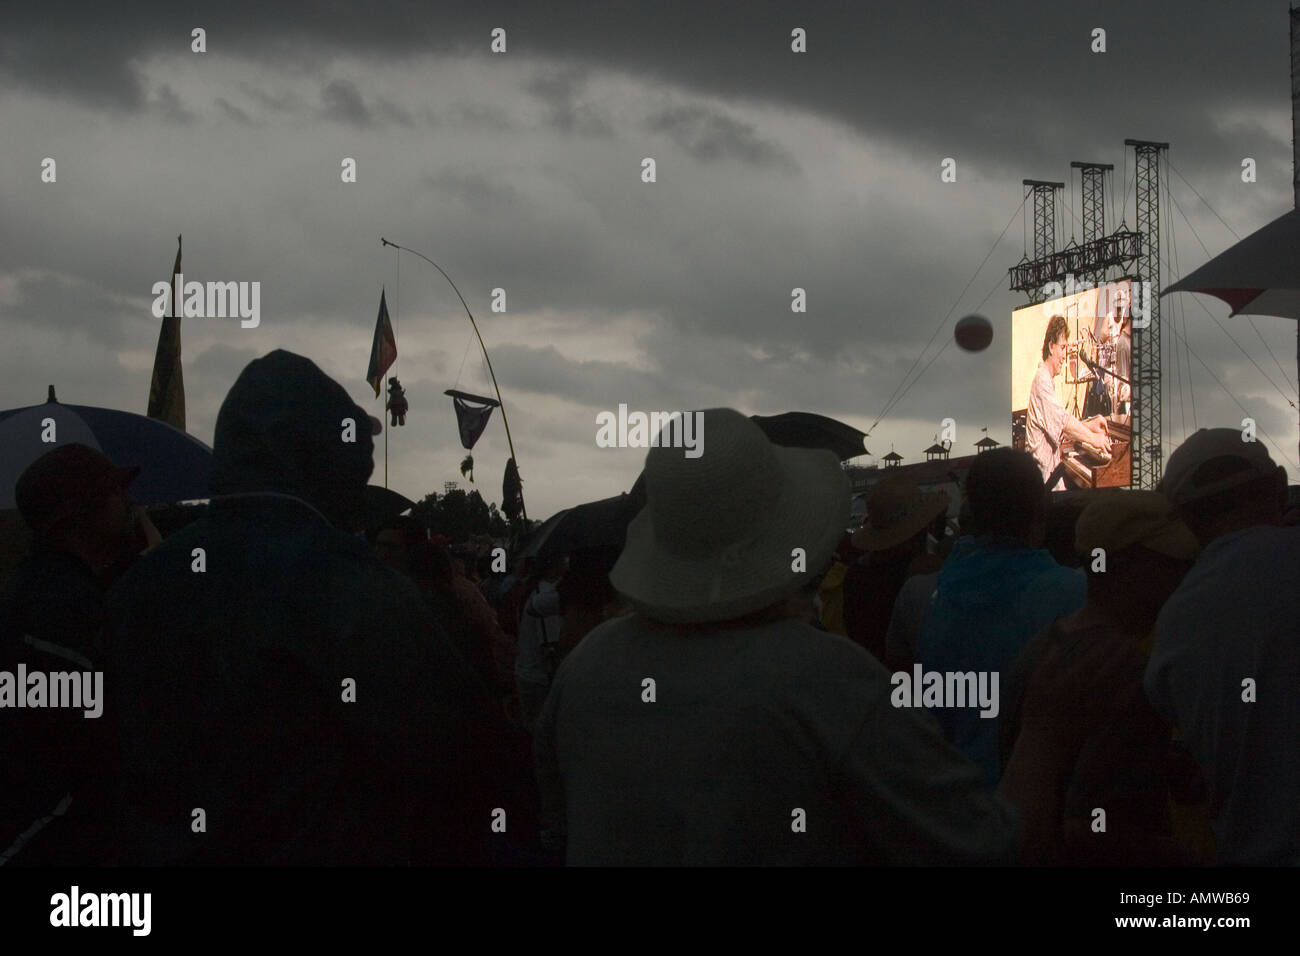 Steve Winwood performing in a storm at the 2004 New Orleans Jazz and Heritage Festival - Stock Image